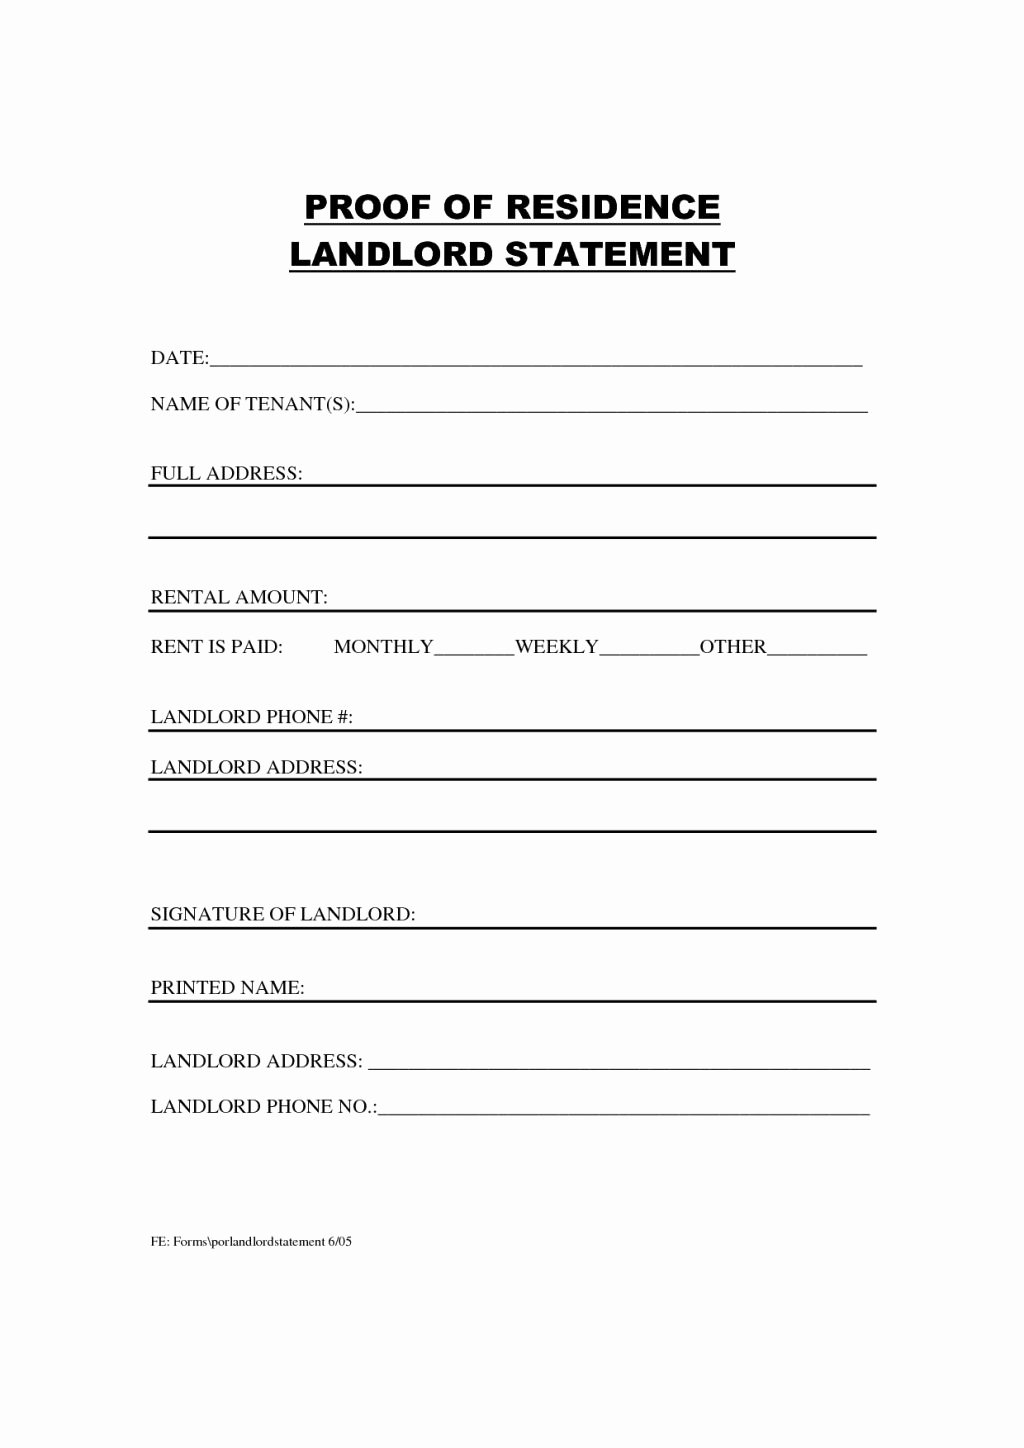 Amazing Proof Residency Letter Template – Letter format